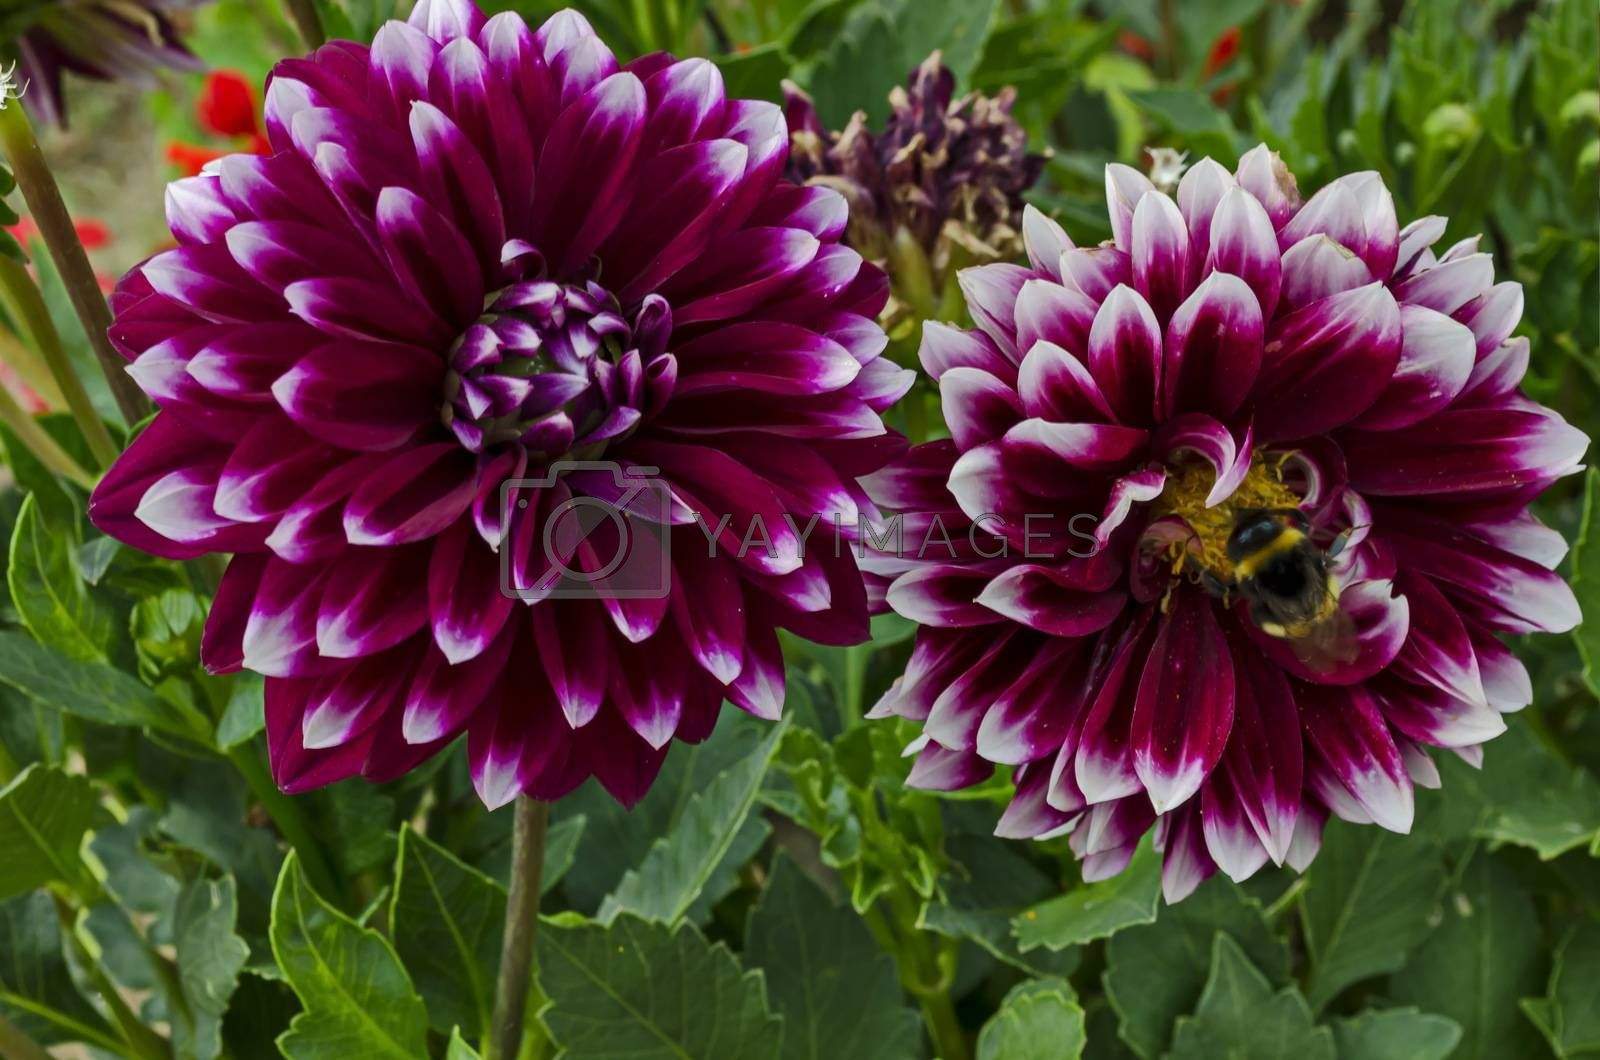 Royalty free image of Fresh twig of  mix color purple and white  Dahlia flower blooming in the garden, town Delchevo by vili45